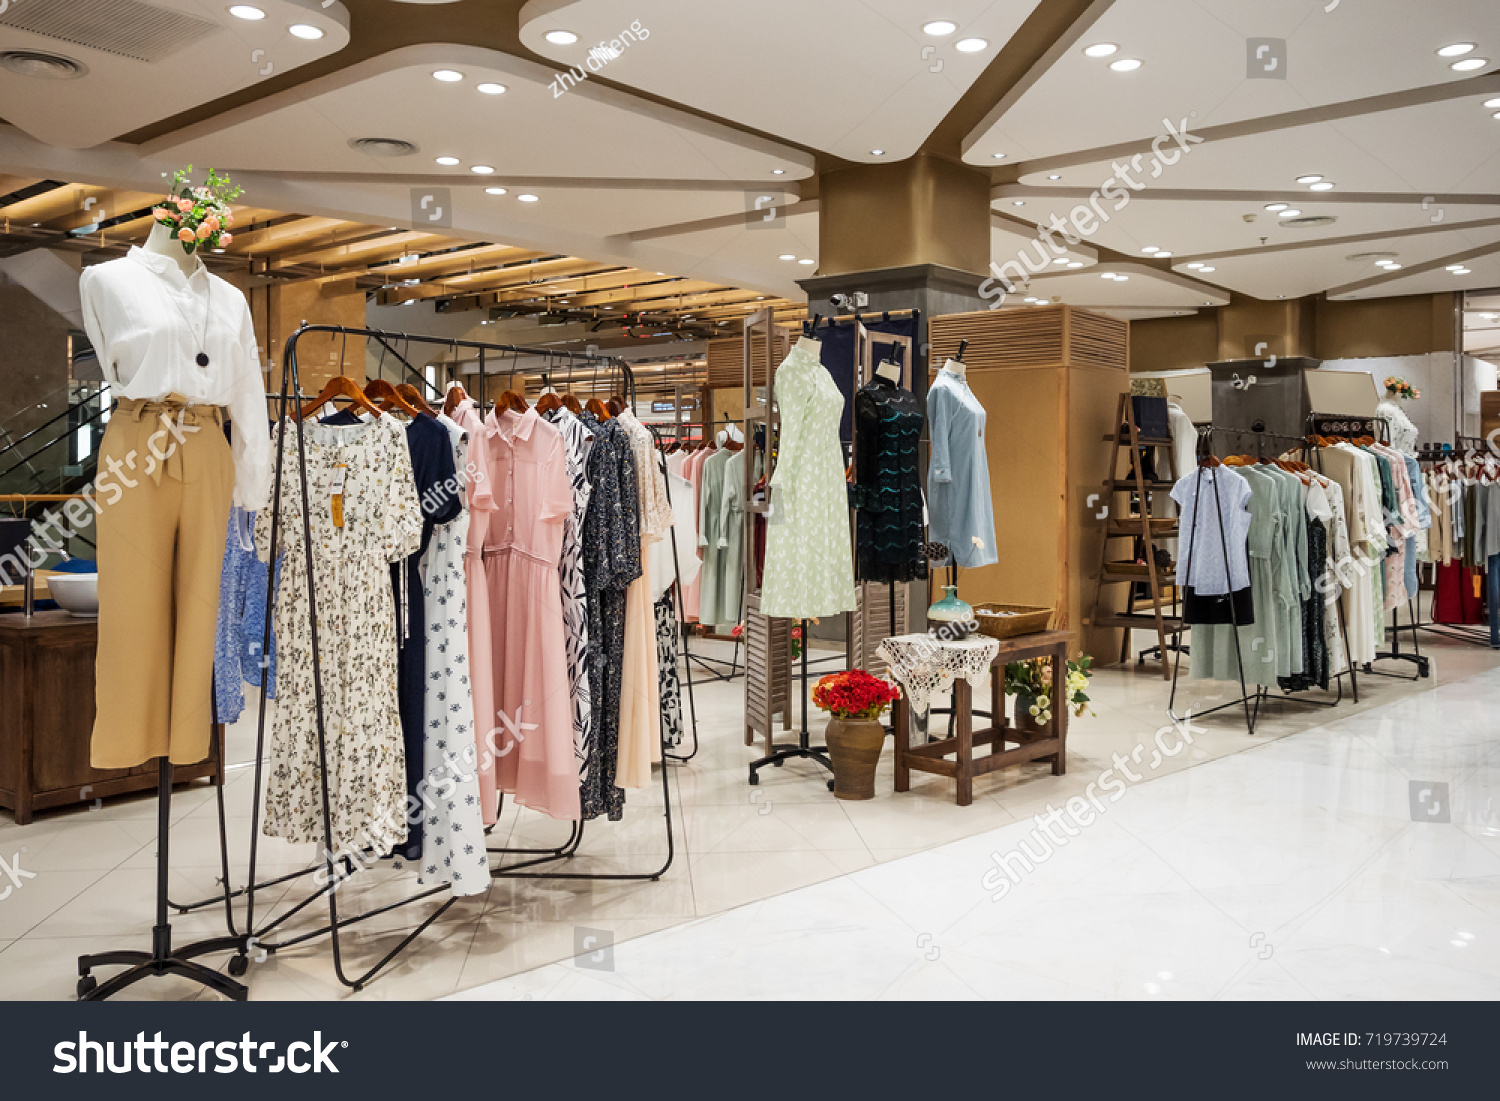 Retail Fashion Shopping Mall:https://www.shutterstock.com